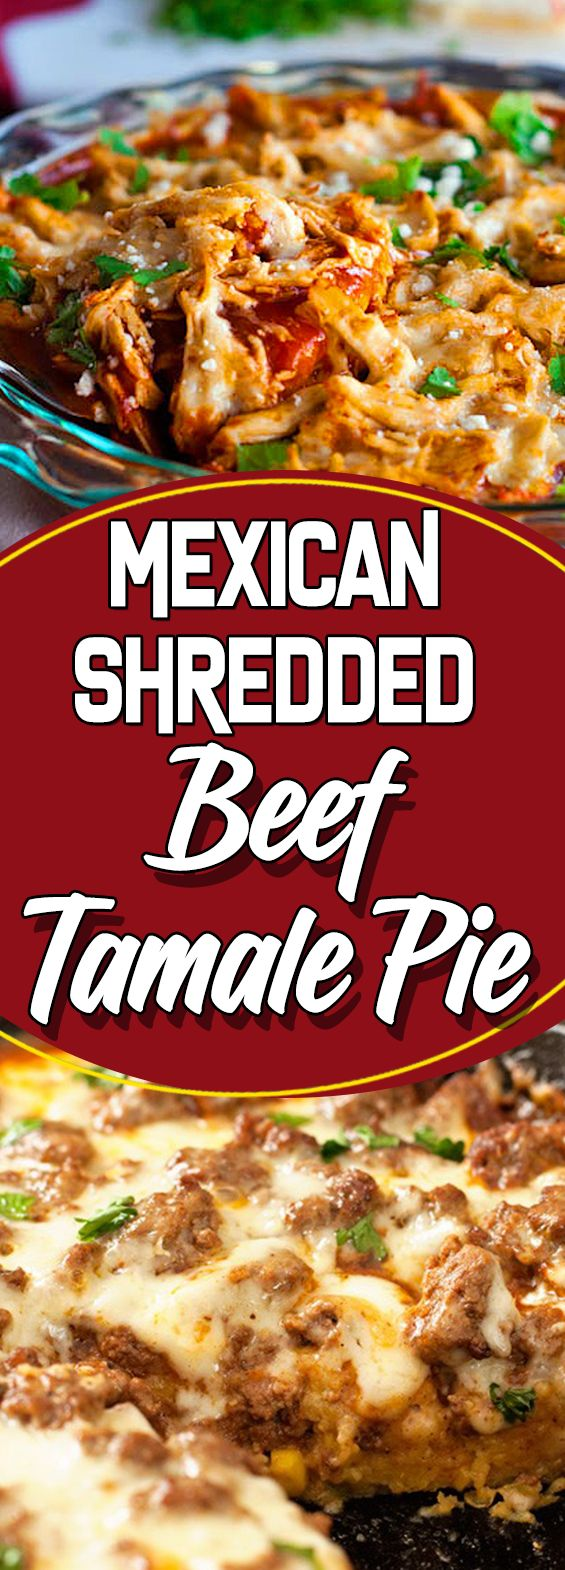 Mexican Shredded Beef Tamale Pie: yummymommies